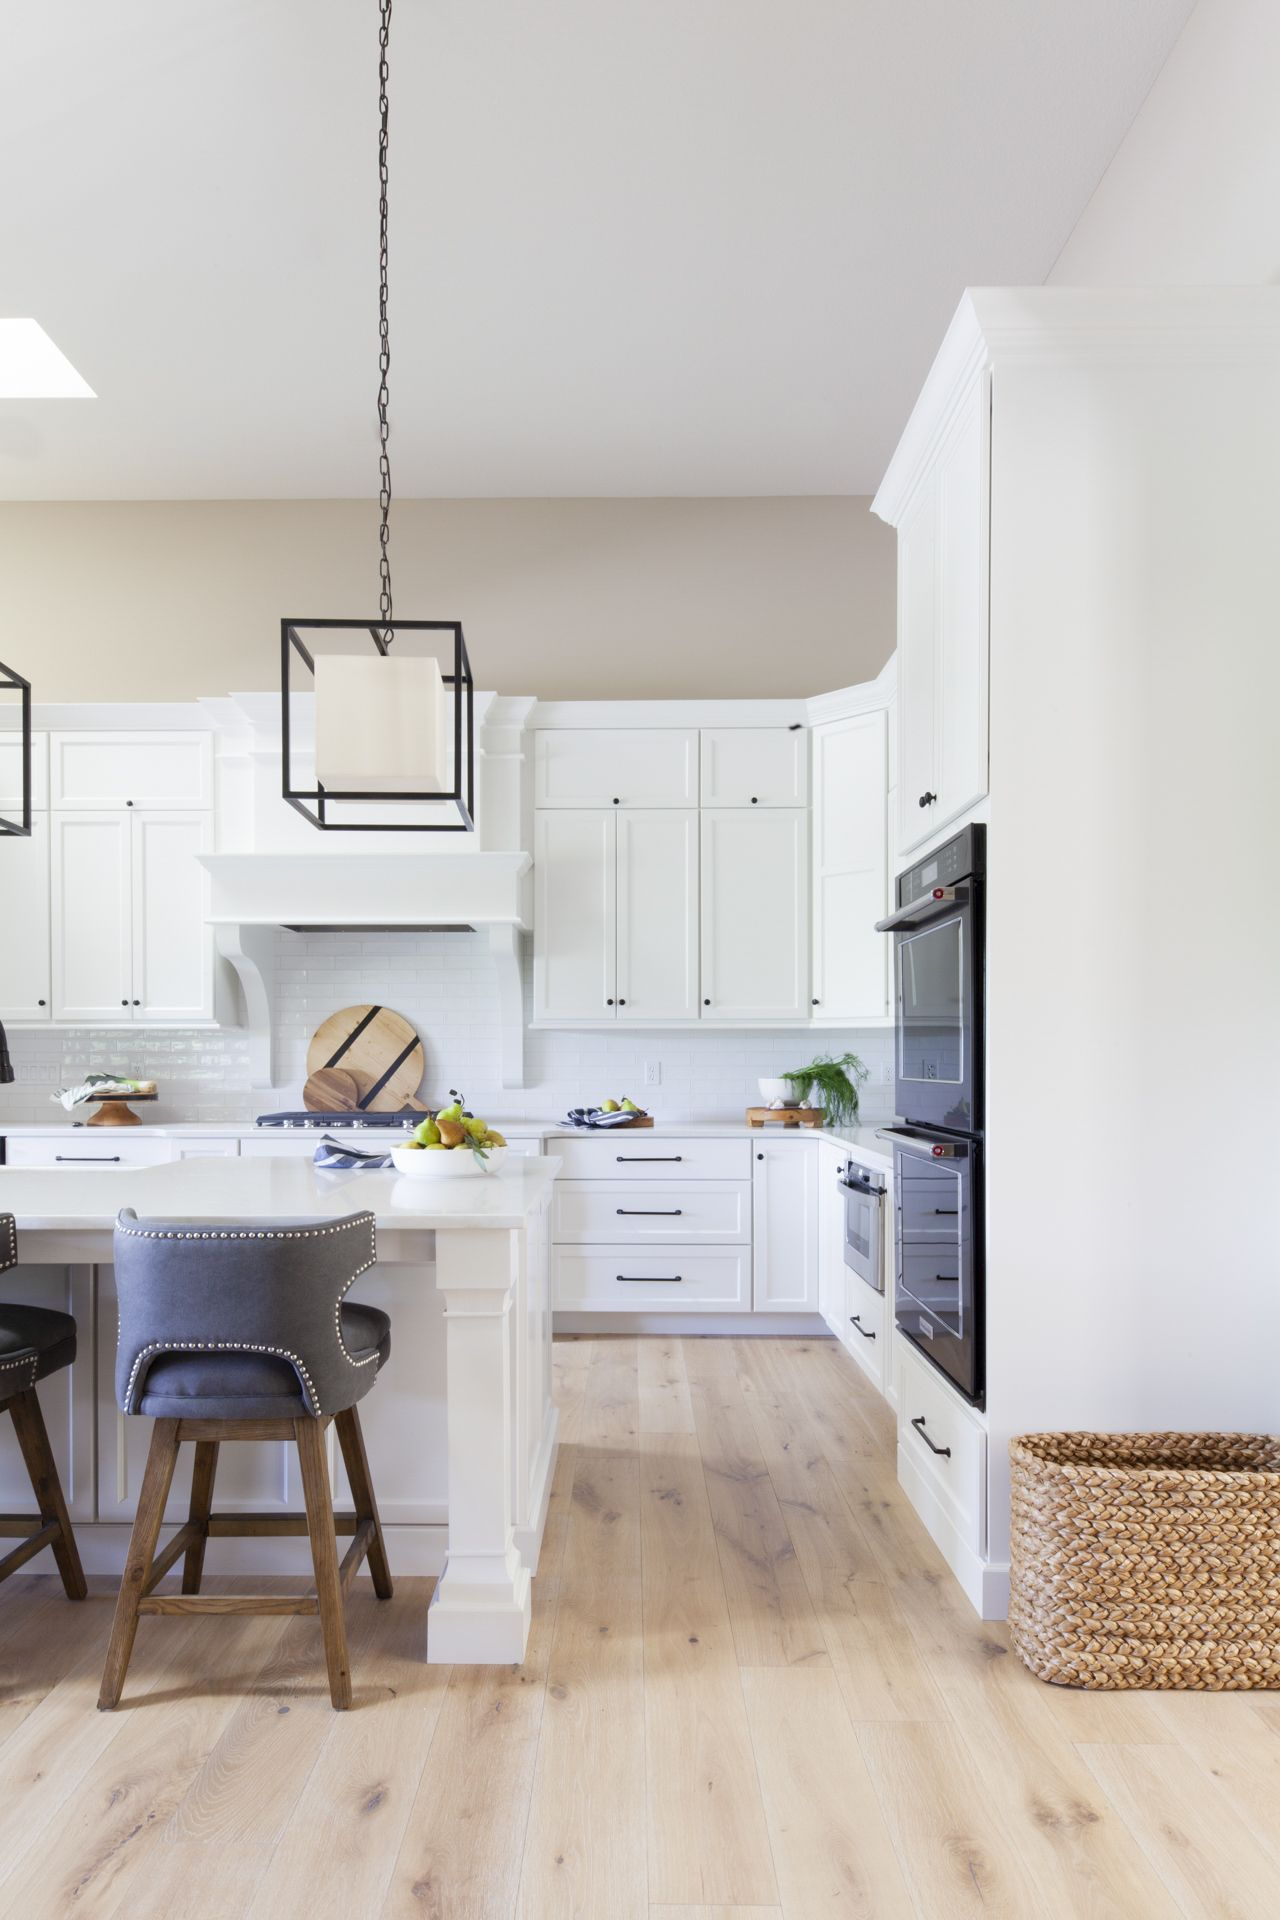 Home Reveal Lakeview Part Ii Scout Nimble Interior Design Kitchen Kitchen Remodel Small Modern Kitchen Design